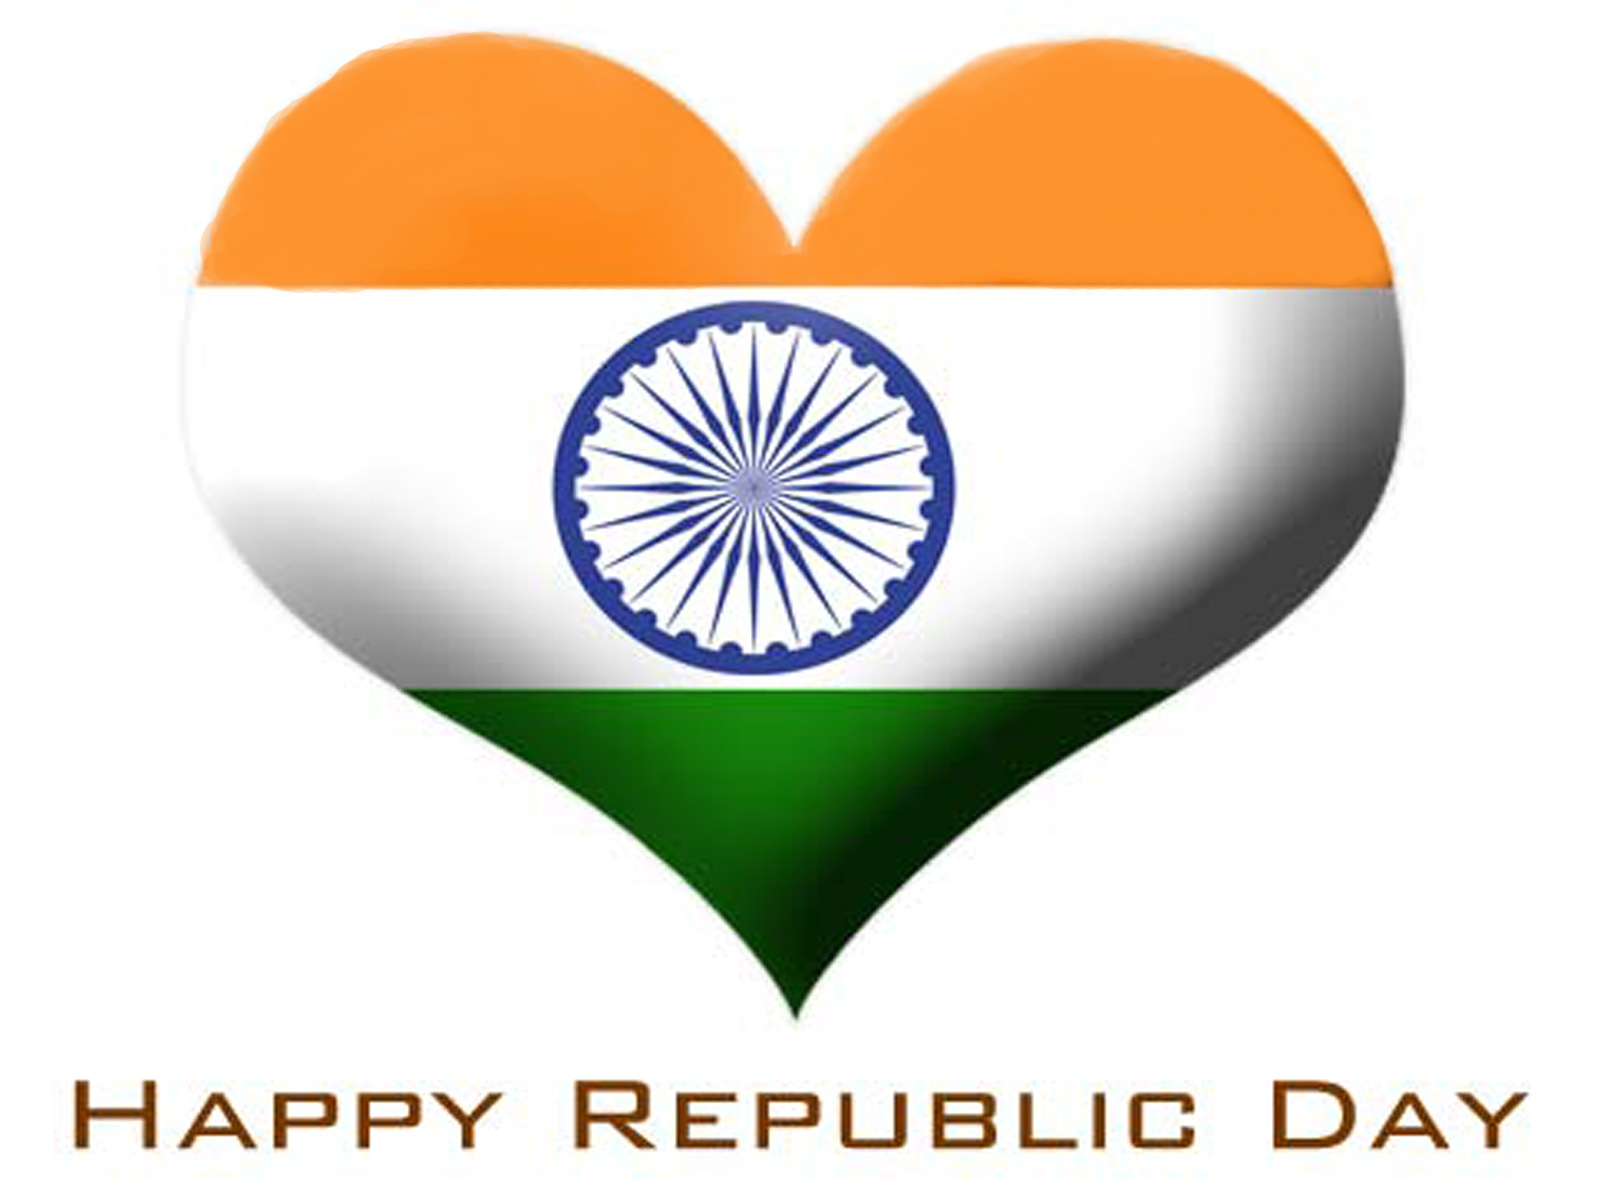 republic day 2018 indian flag images, pictures, wallpapers for